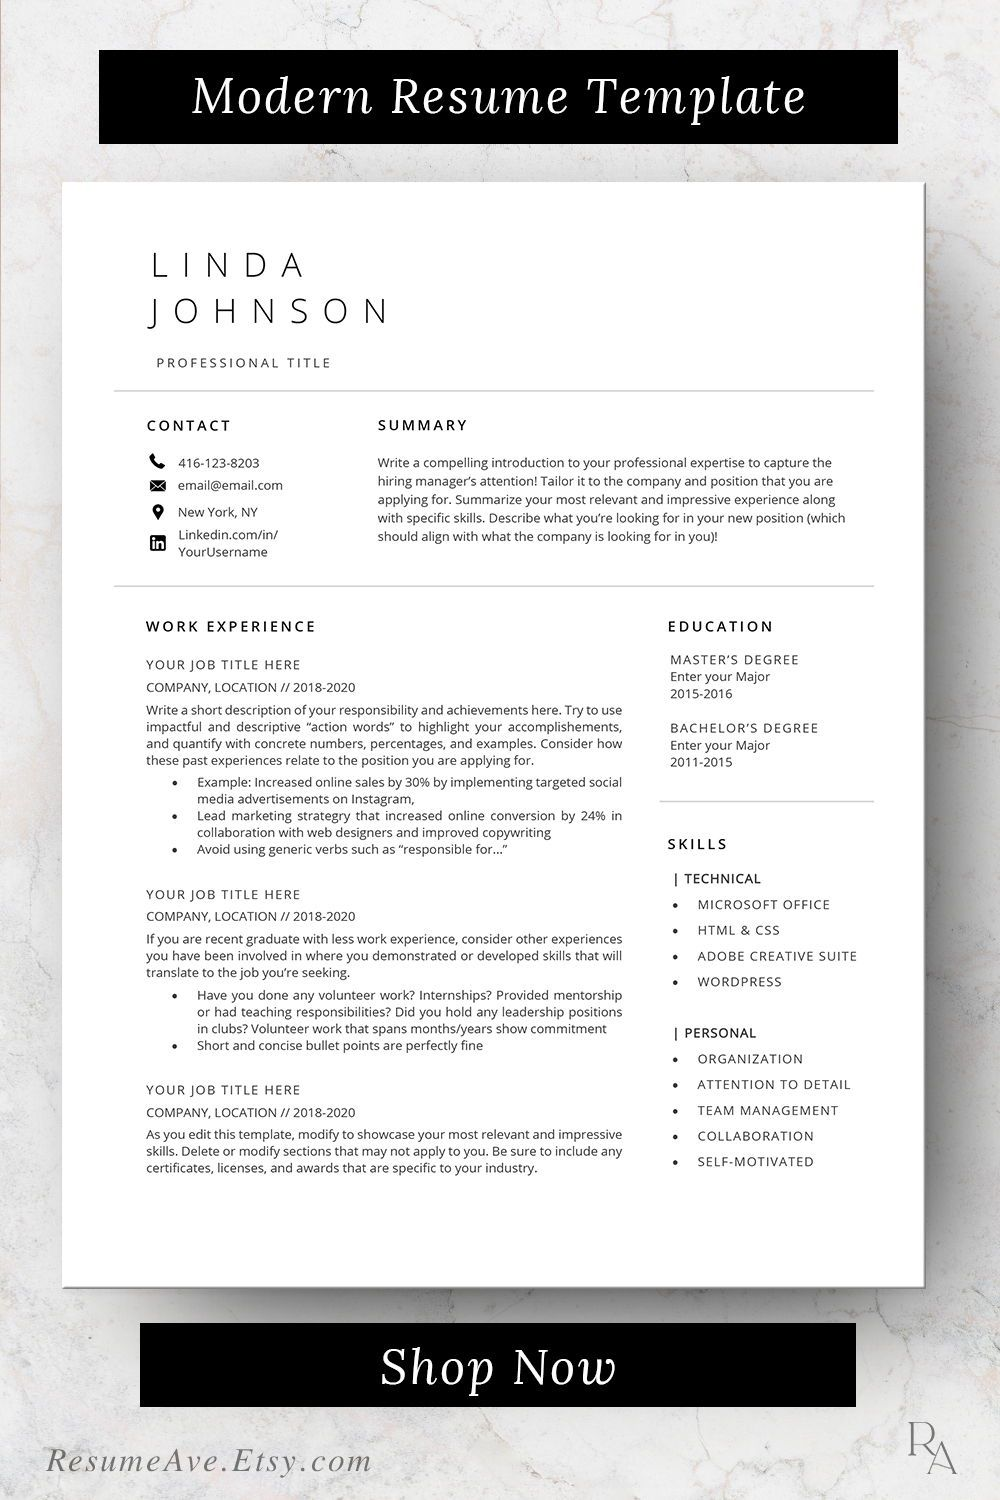 Executive resume professional design minimalistic